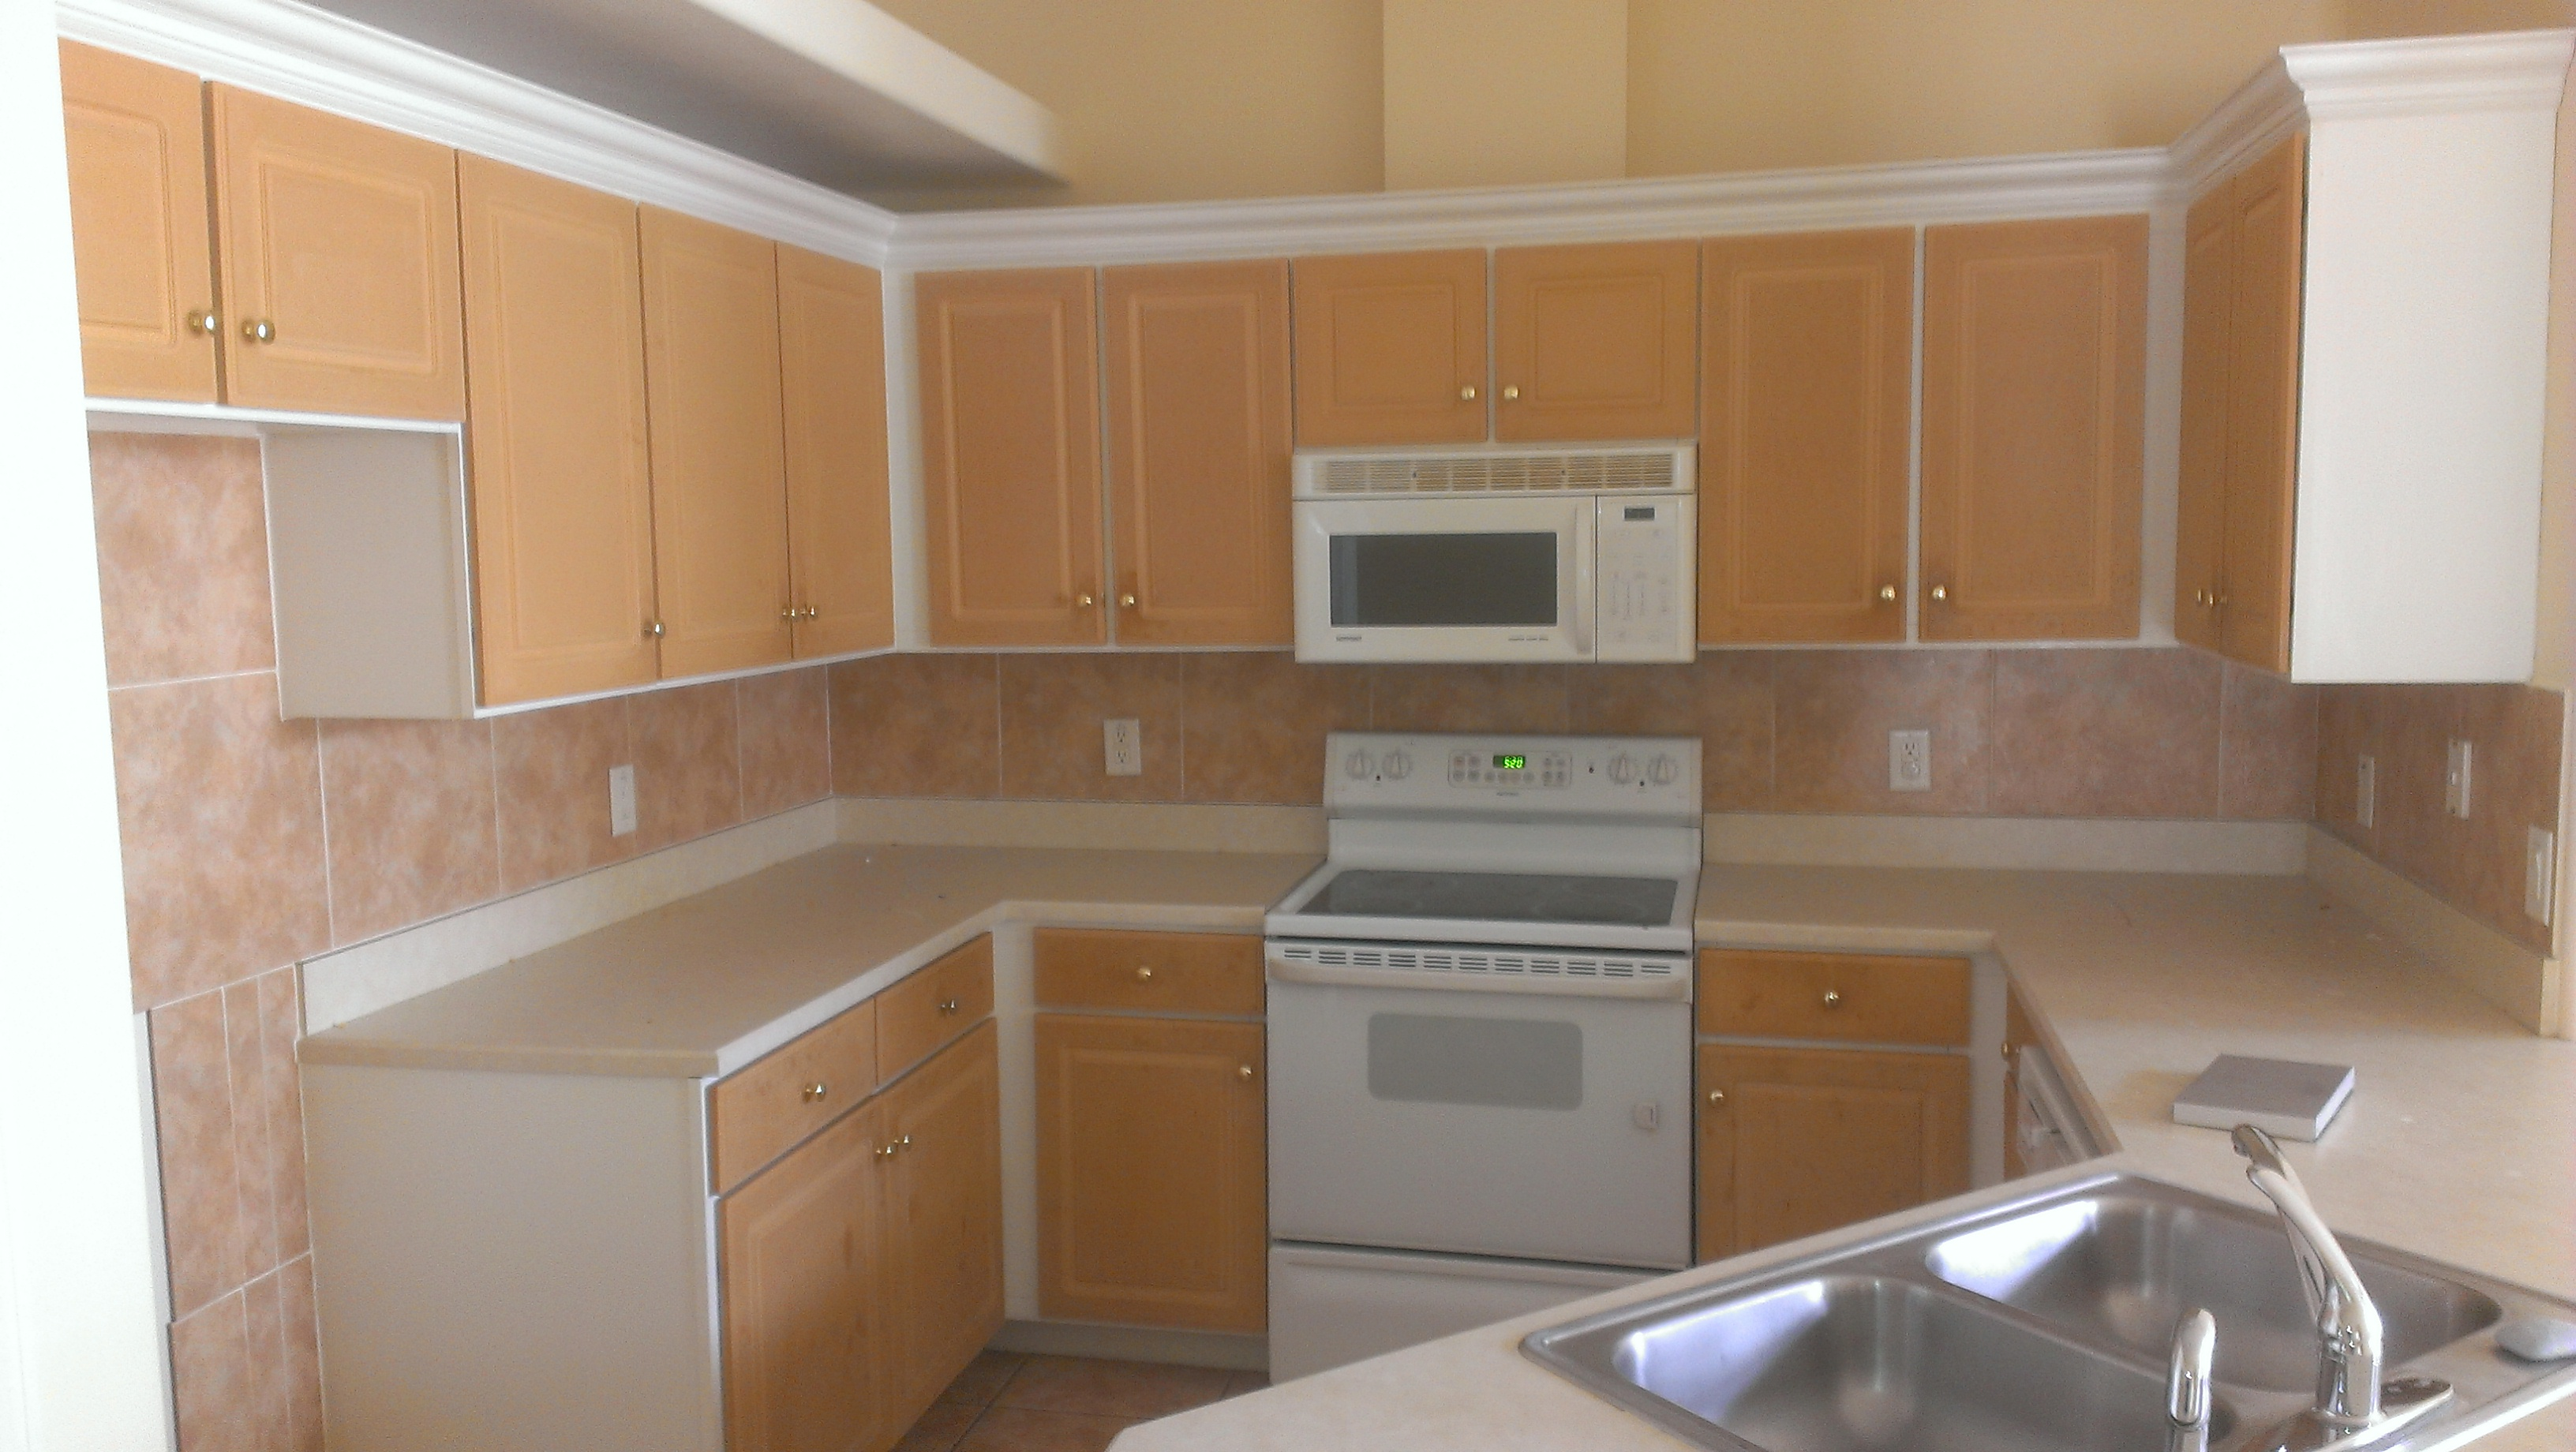 cabinet refinishing expert in daytona beach florida diy refinish kitchen cabinets - Painting Kitchen Cabinets Ideas Pictures